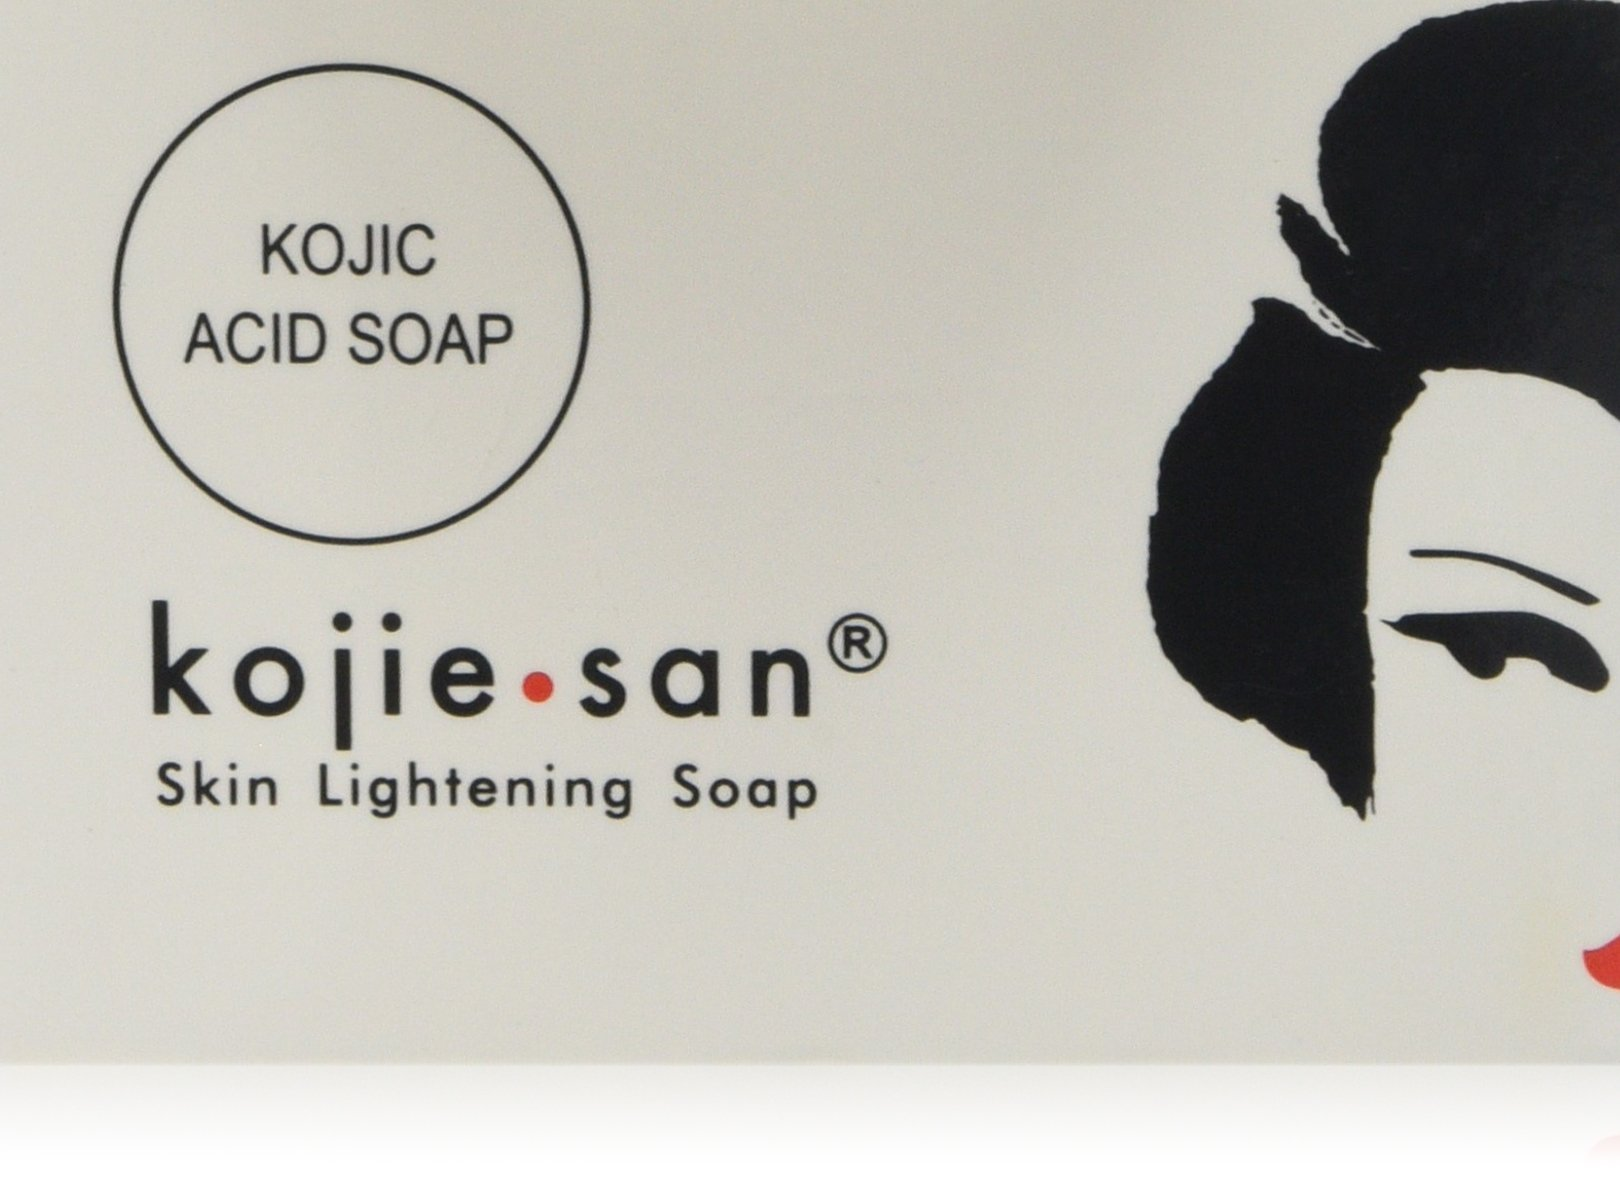 Kojie San Skin Lightening Soap 2x135g Bars Pack